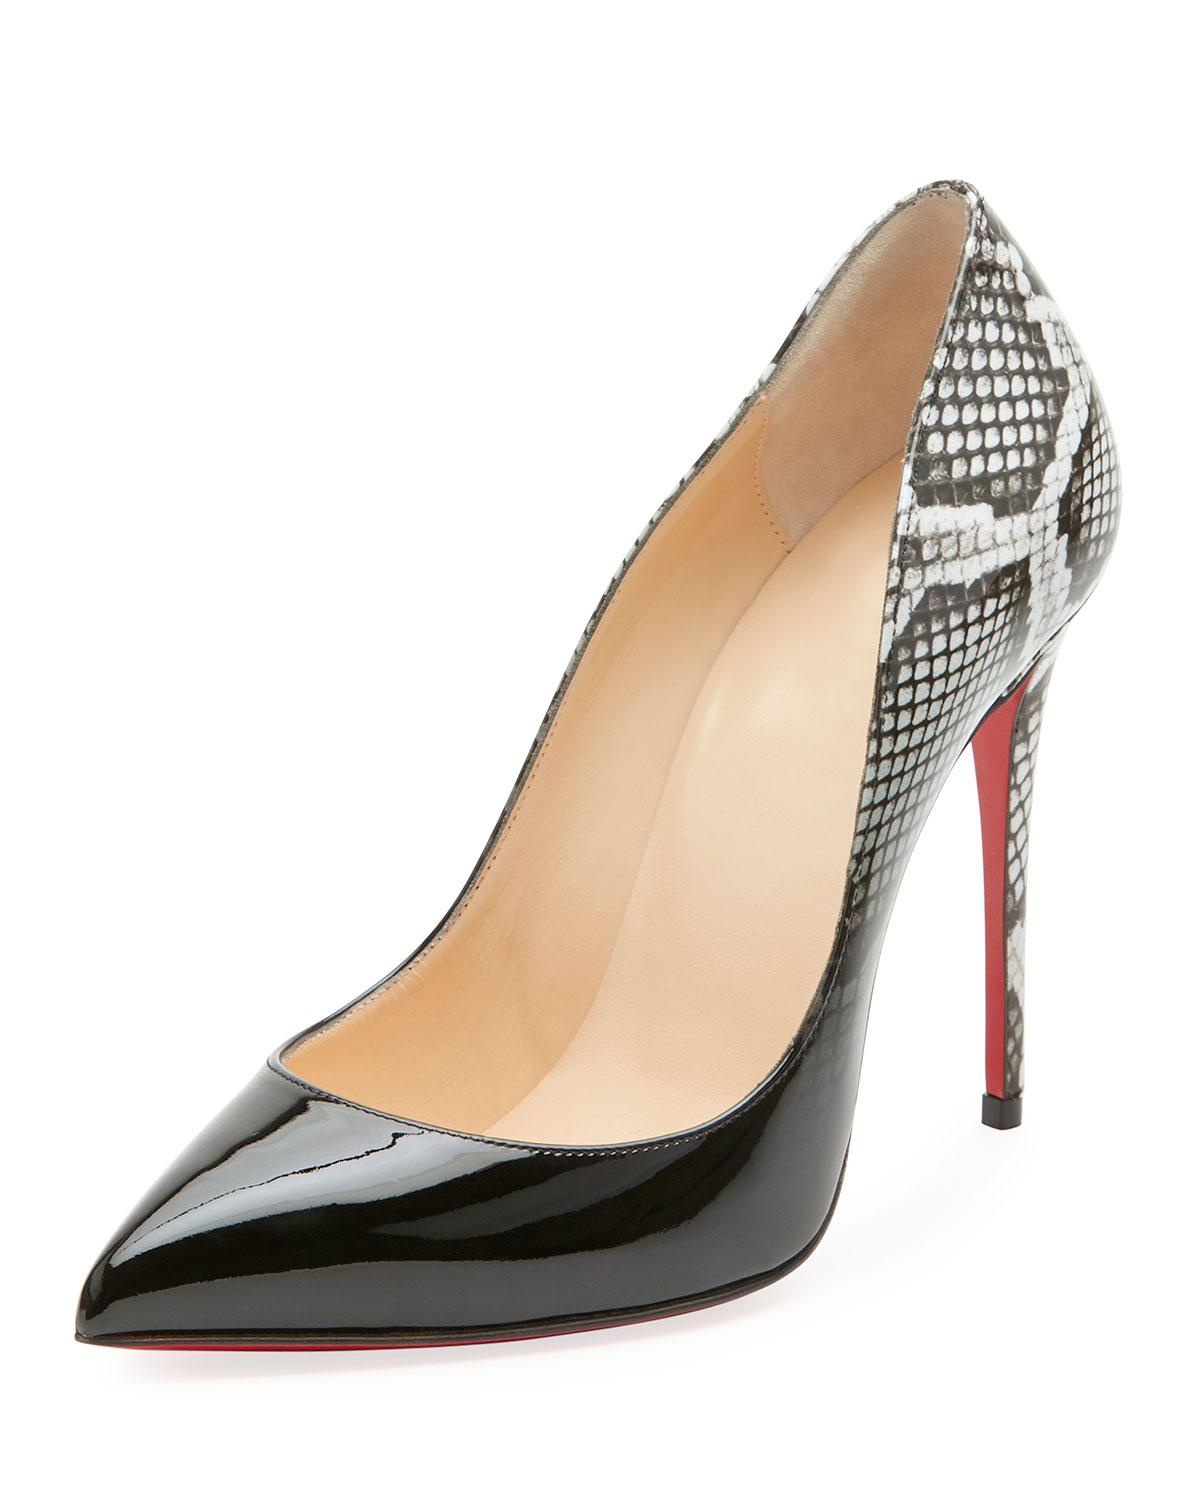 Christian Louboutin. Women's Pigalle Follies Ombre Snake-print Red Sole Pump